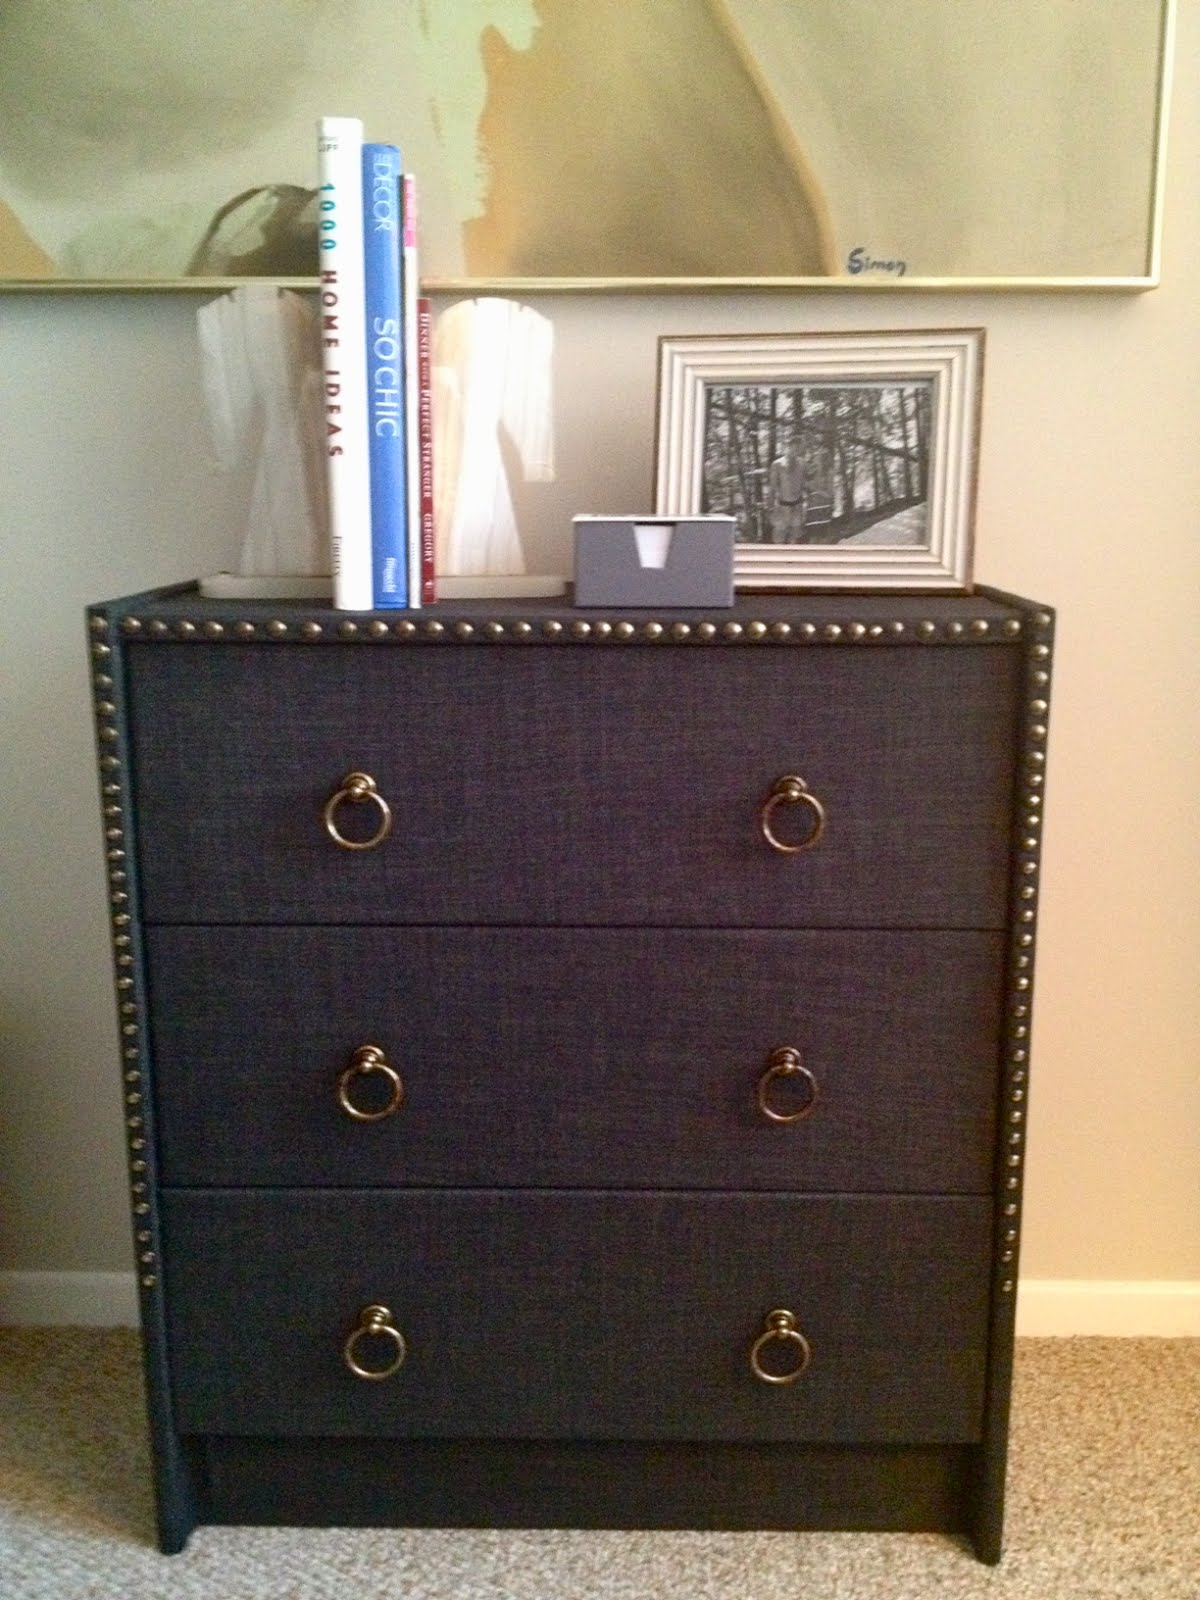 IKEA dresser wrapped in linen fabric